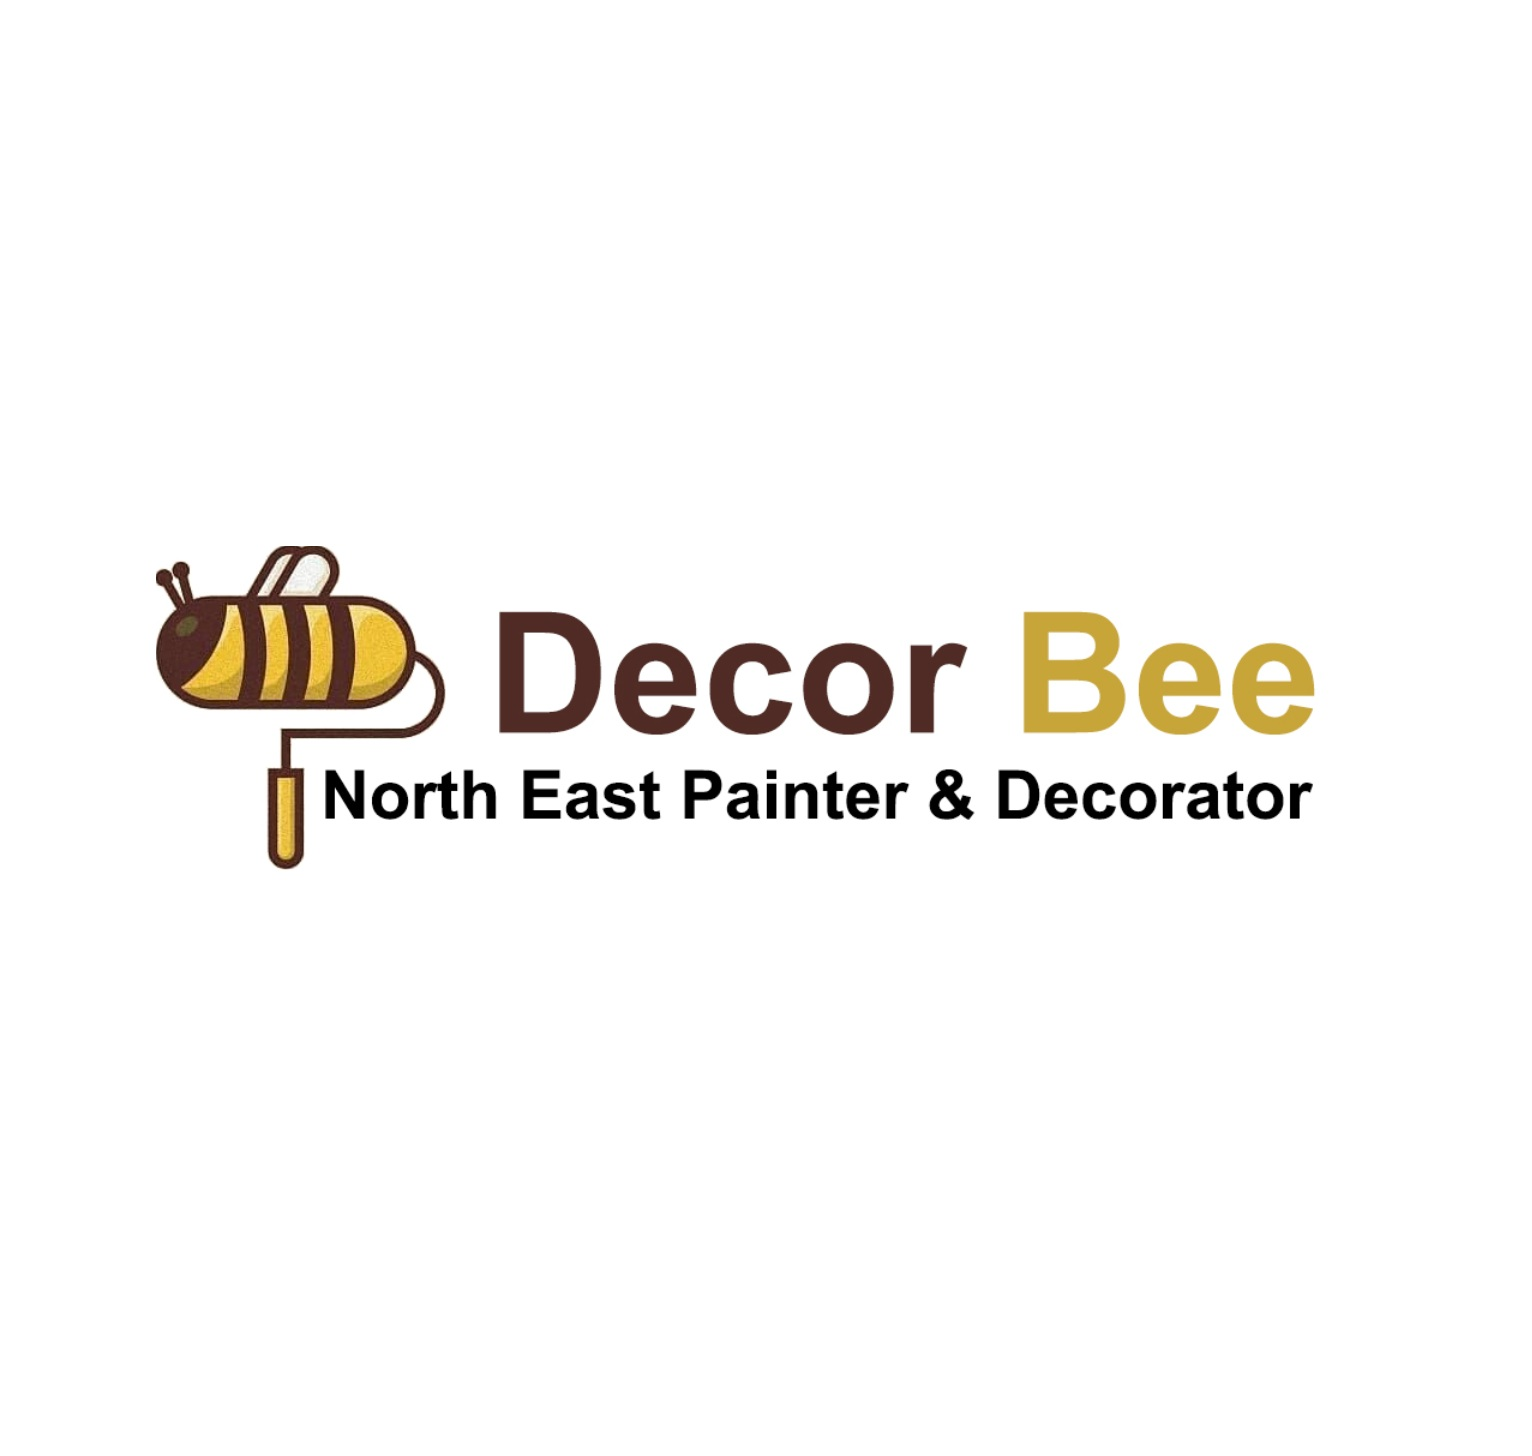 Decor Bee